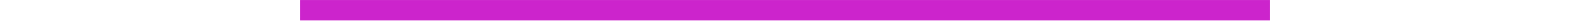 pink line.png